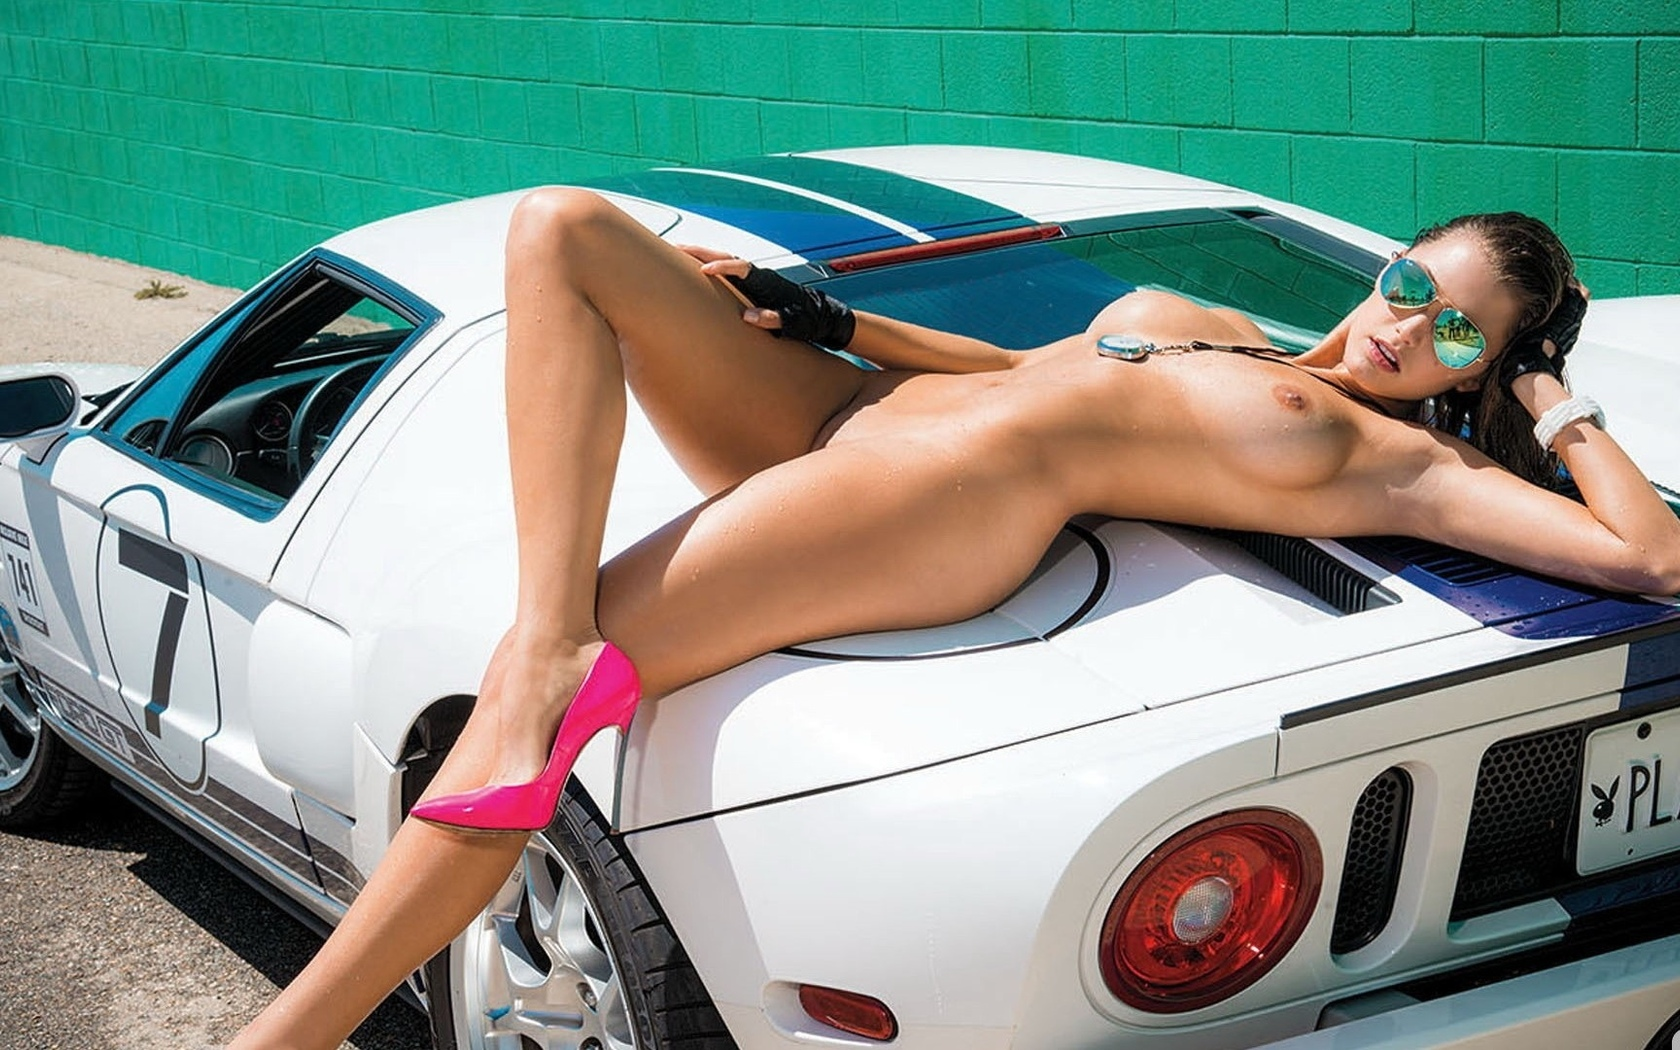 Sexy naked chicks on cars